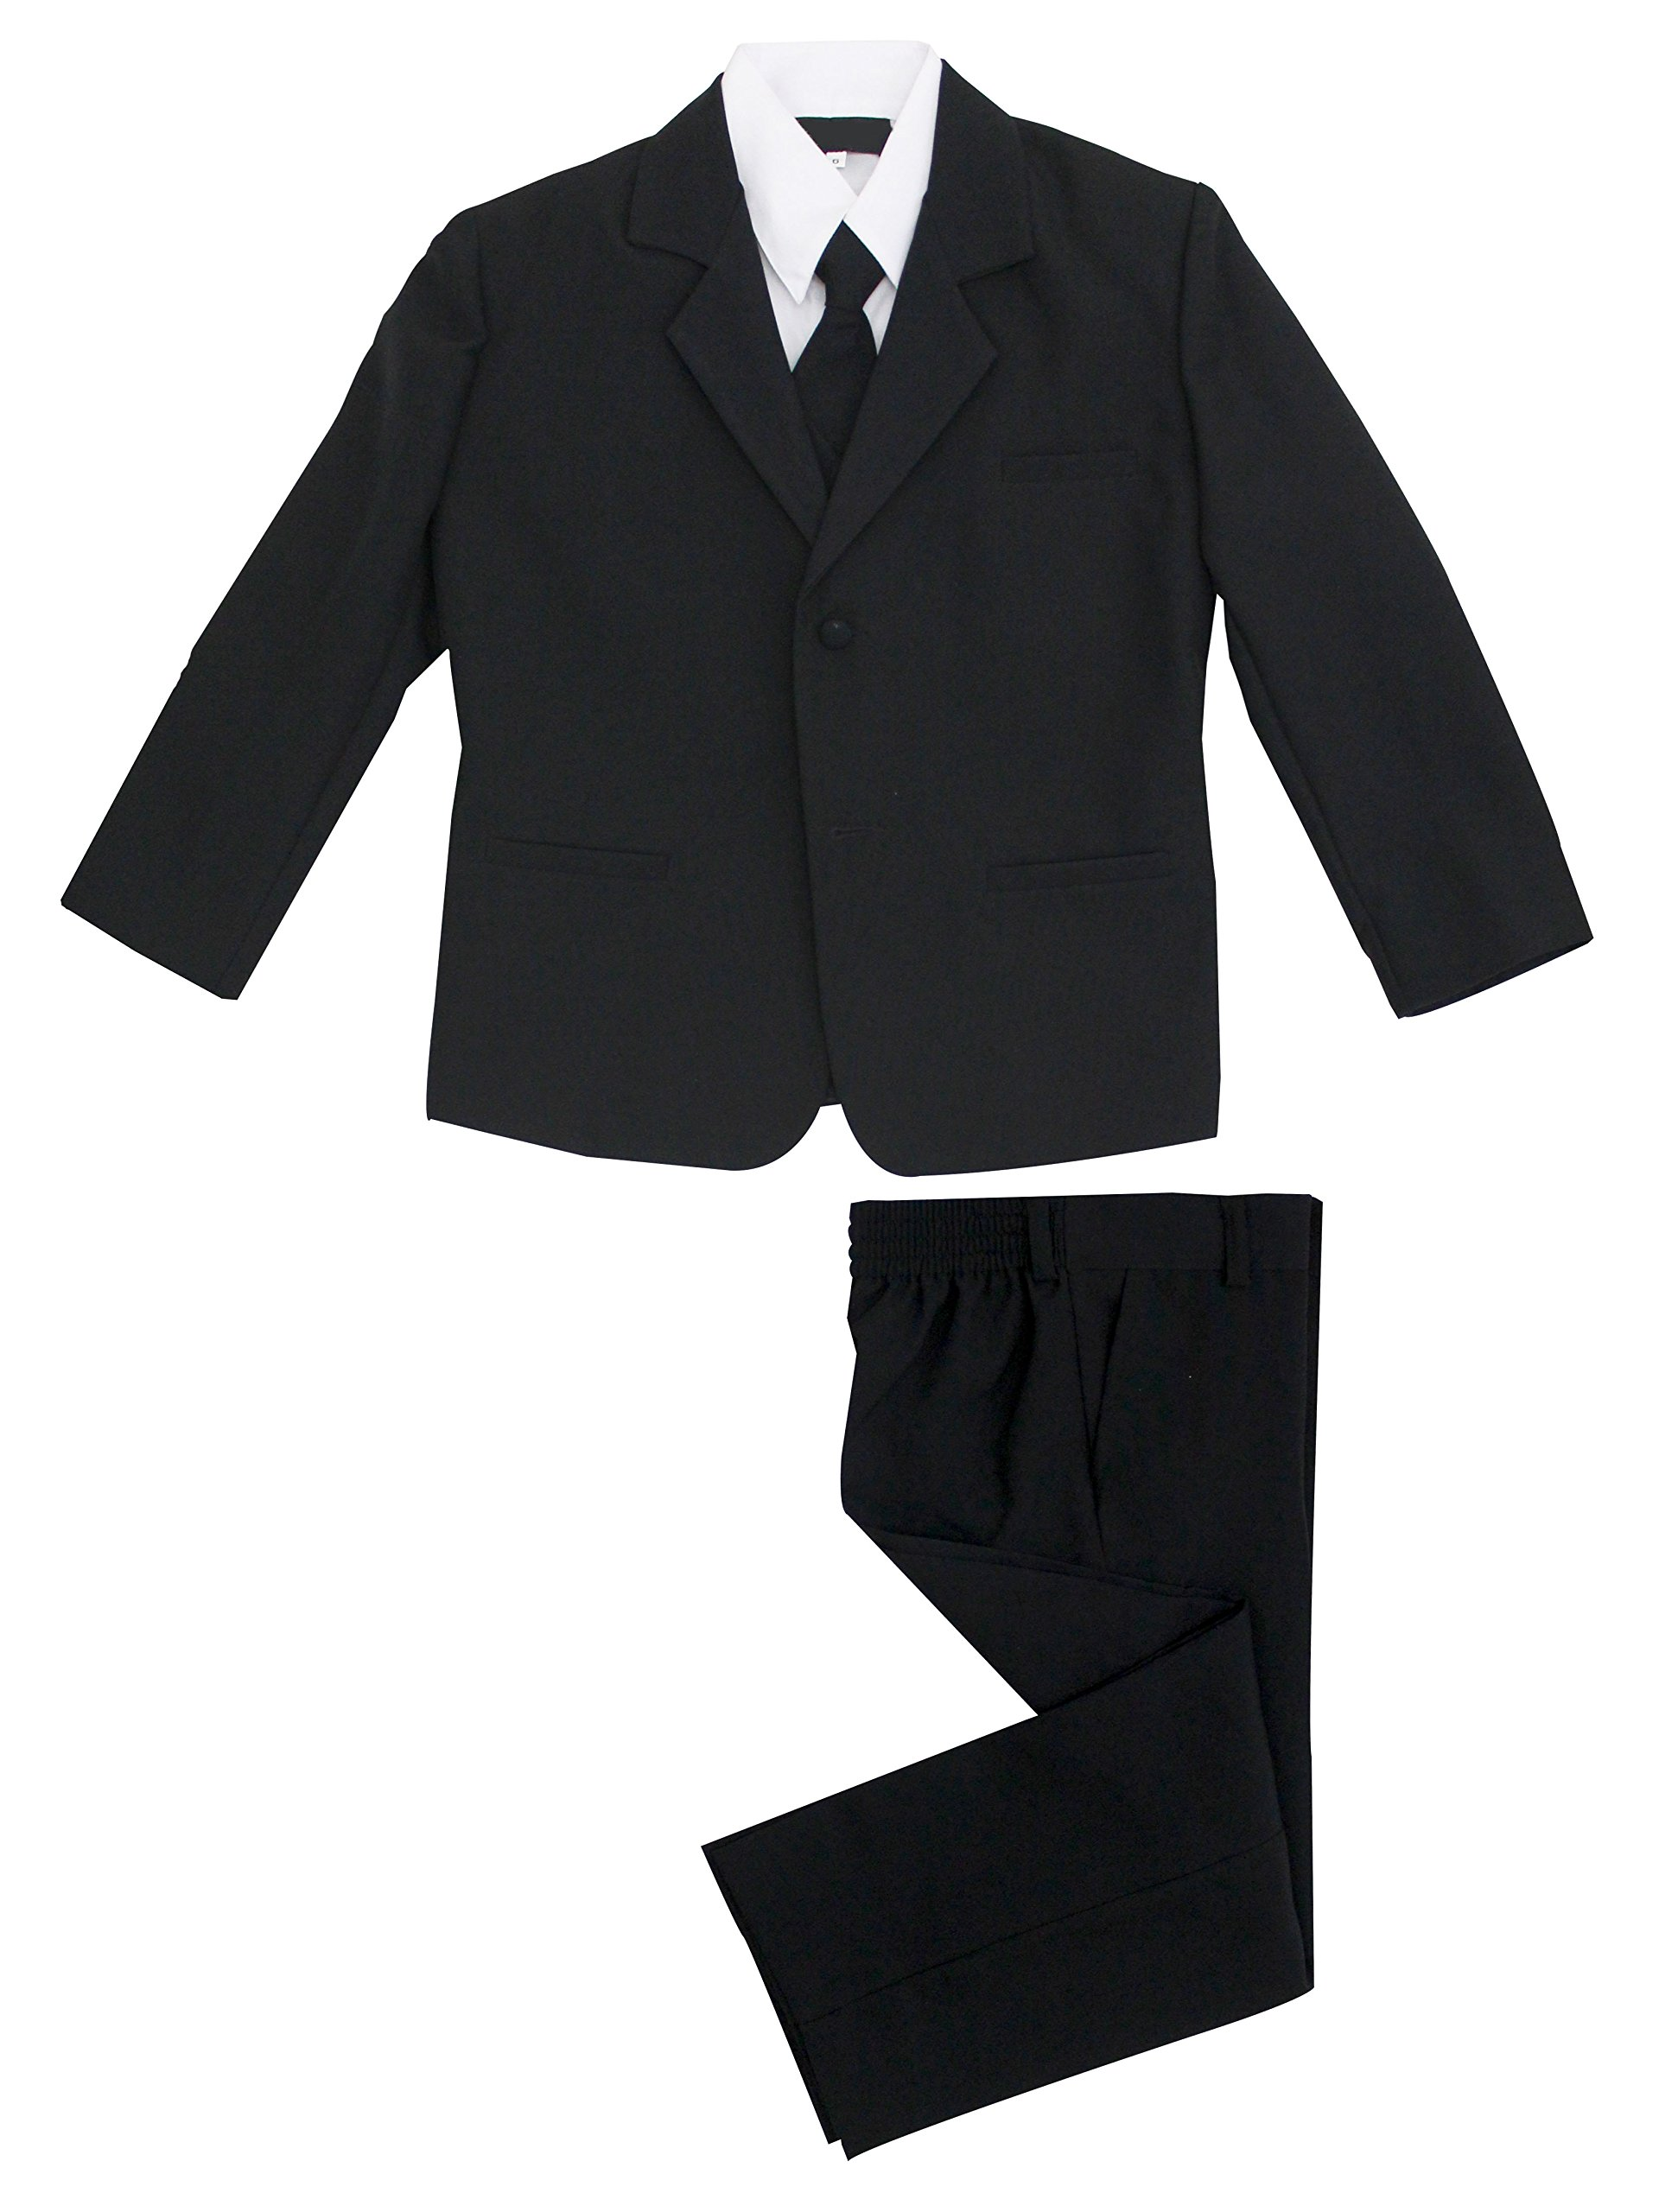 Luca Gabriel Toddler Boys' 5 Piece Classic Fit No Tail Formal Black Dress Suit Set with Tie and Vest - Size 4T by Luca Gabriel (Image #5)